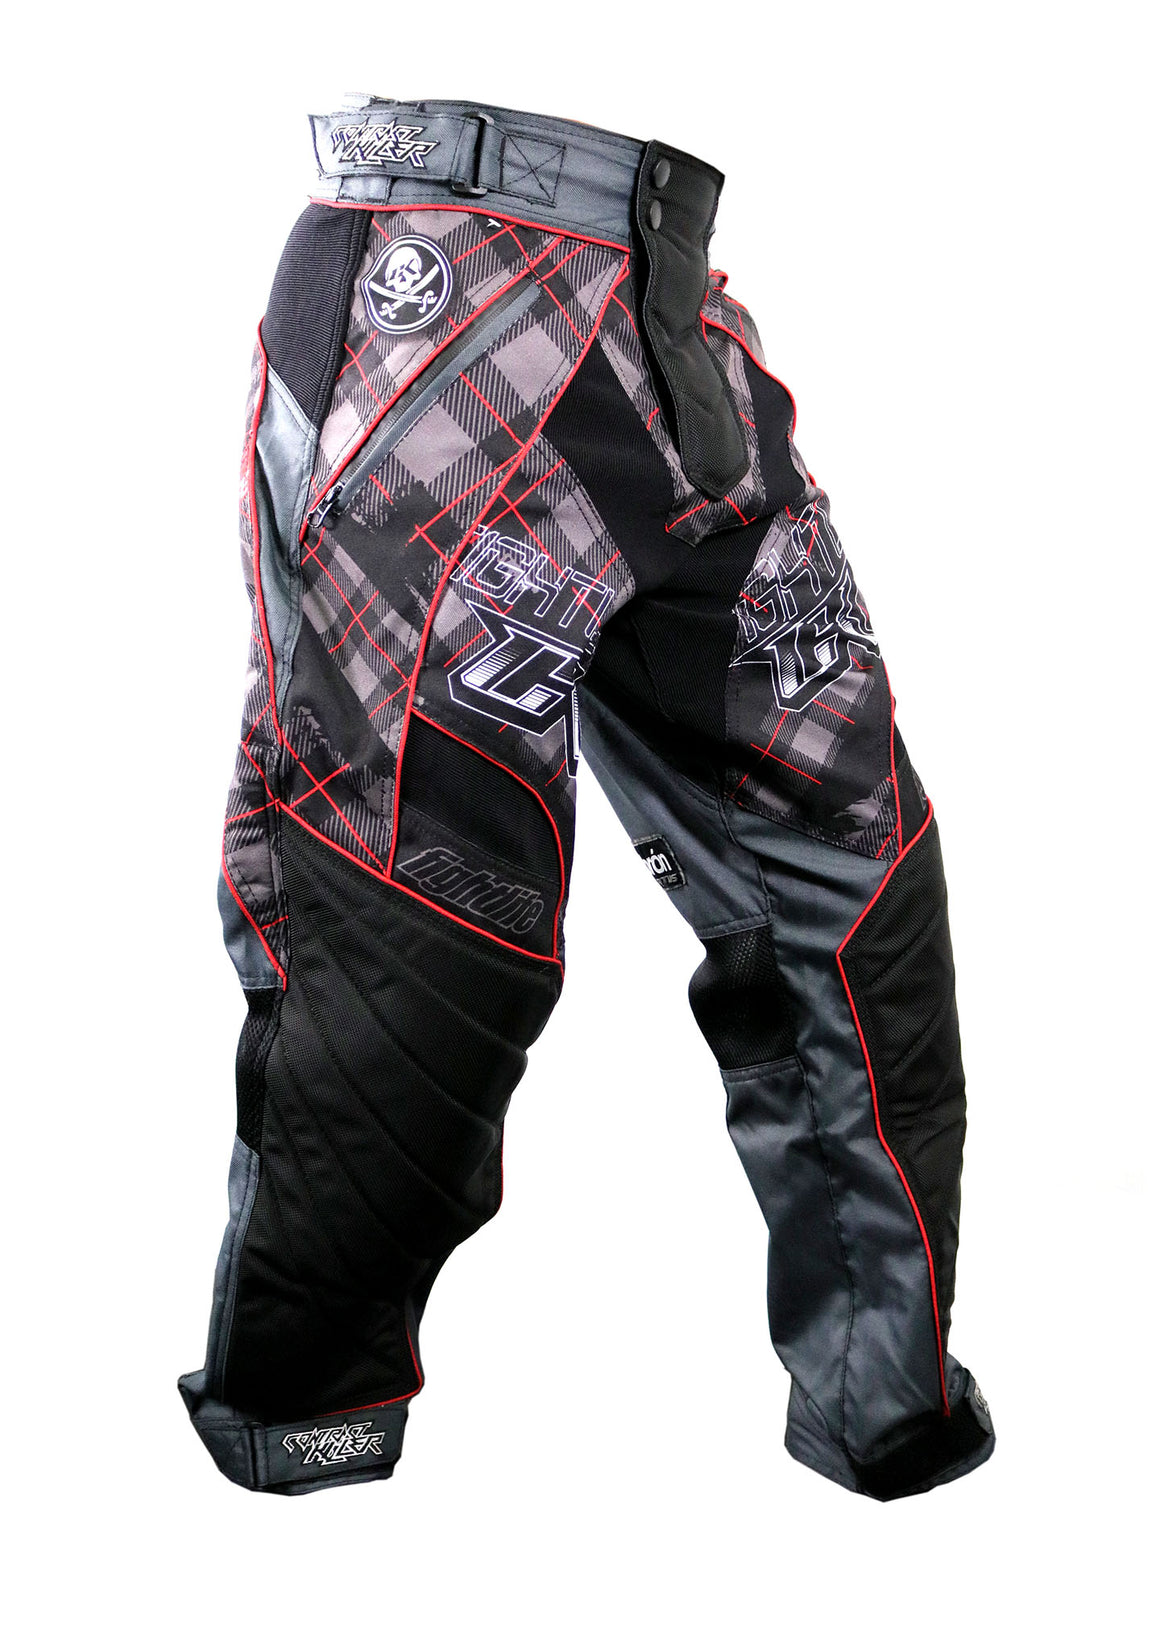 Contract Killer GTI Paintball Pants - Black